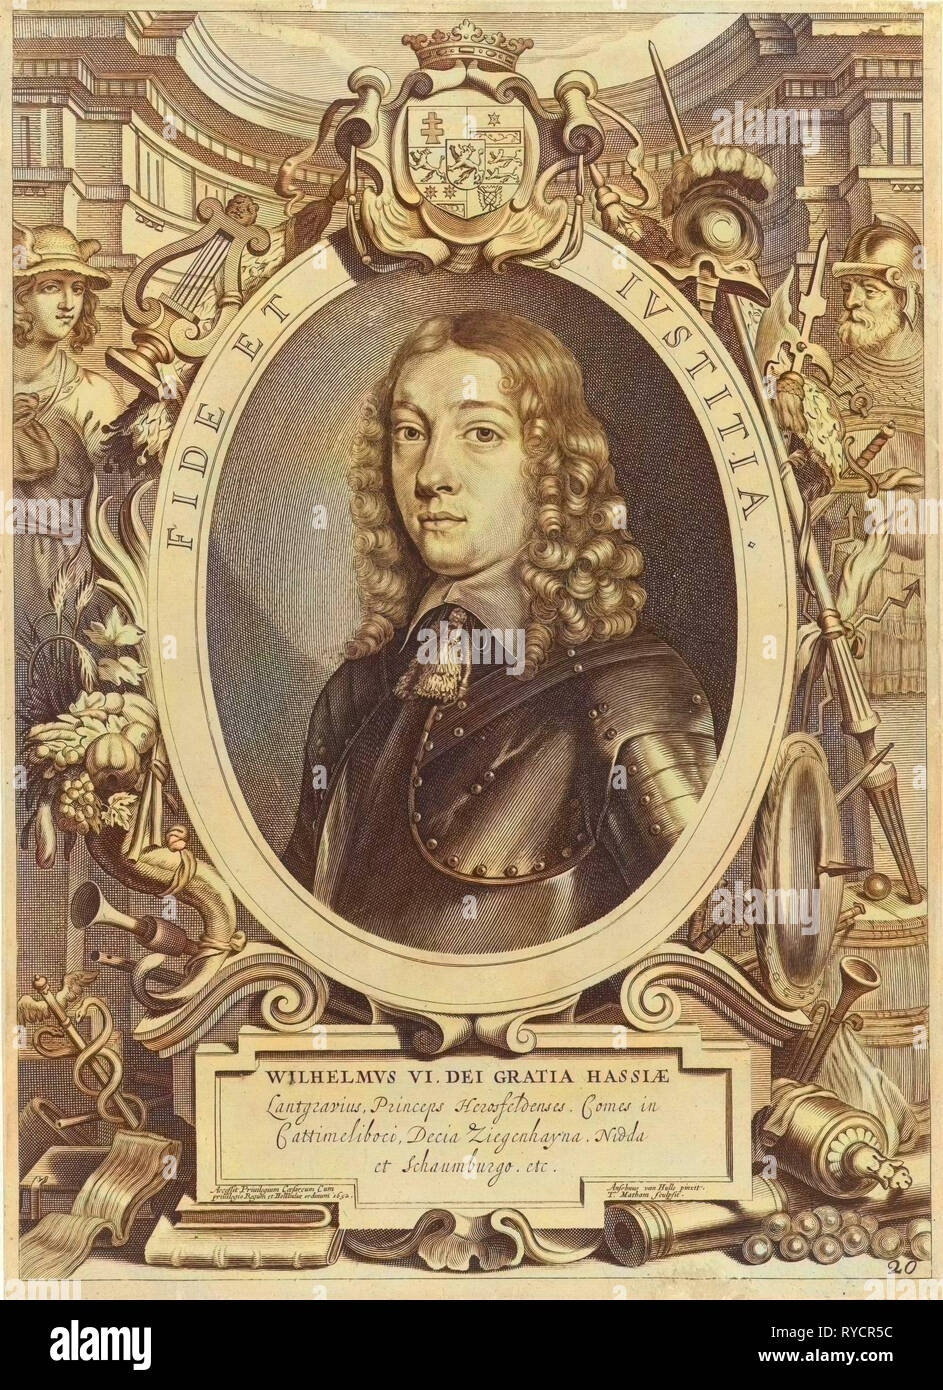 Portrait of William VI, Landgrave of Hesse-Kassel, in an allegorical frame, Mercury and attributes including winch, caduceus and cornucopia, a second allegorical figure (Jupiter?) With attributes like war lance, shield, helmet and a thunderbolt, print maker: Theodor Matham (mentioned on object), Dating 1652 and/or 1717 - Stock Image